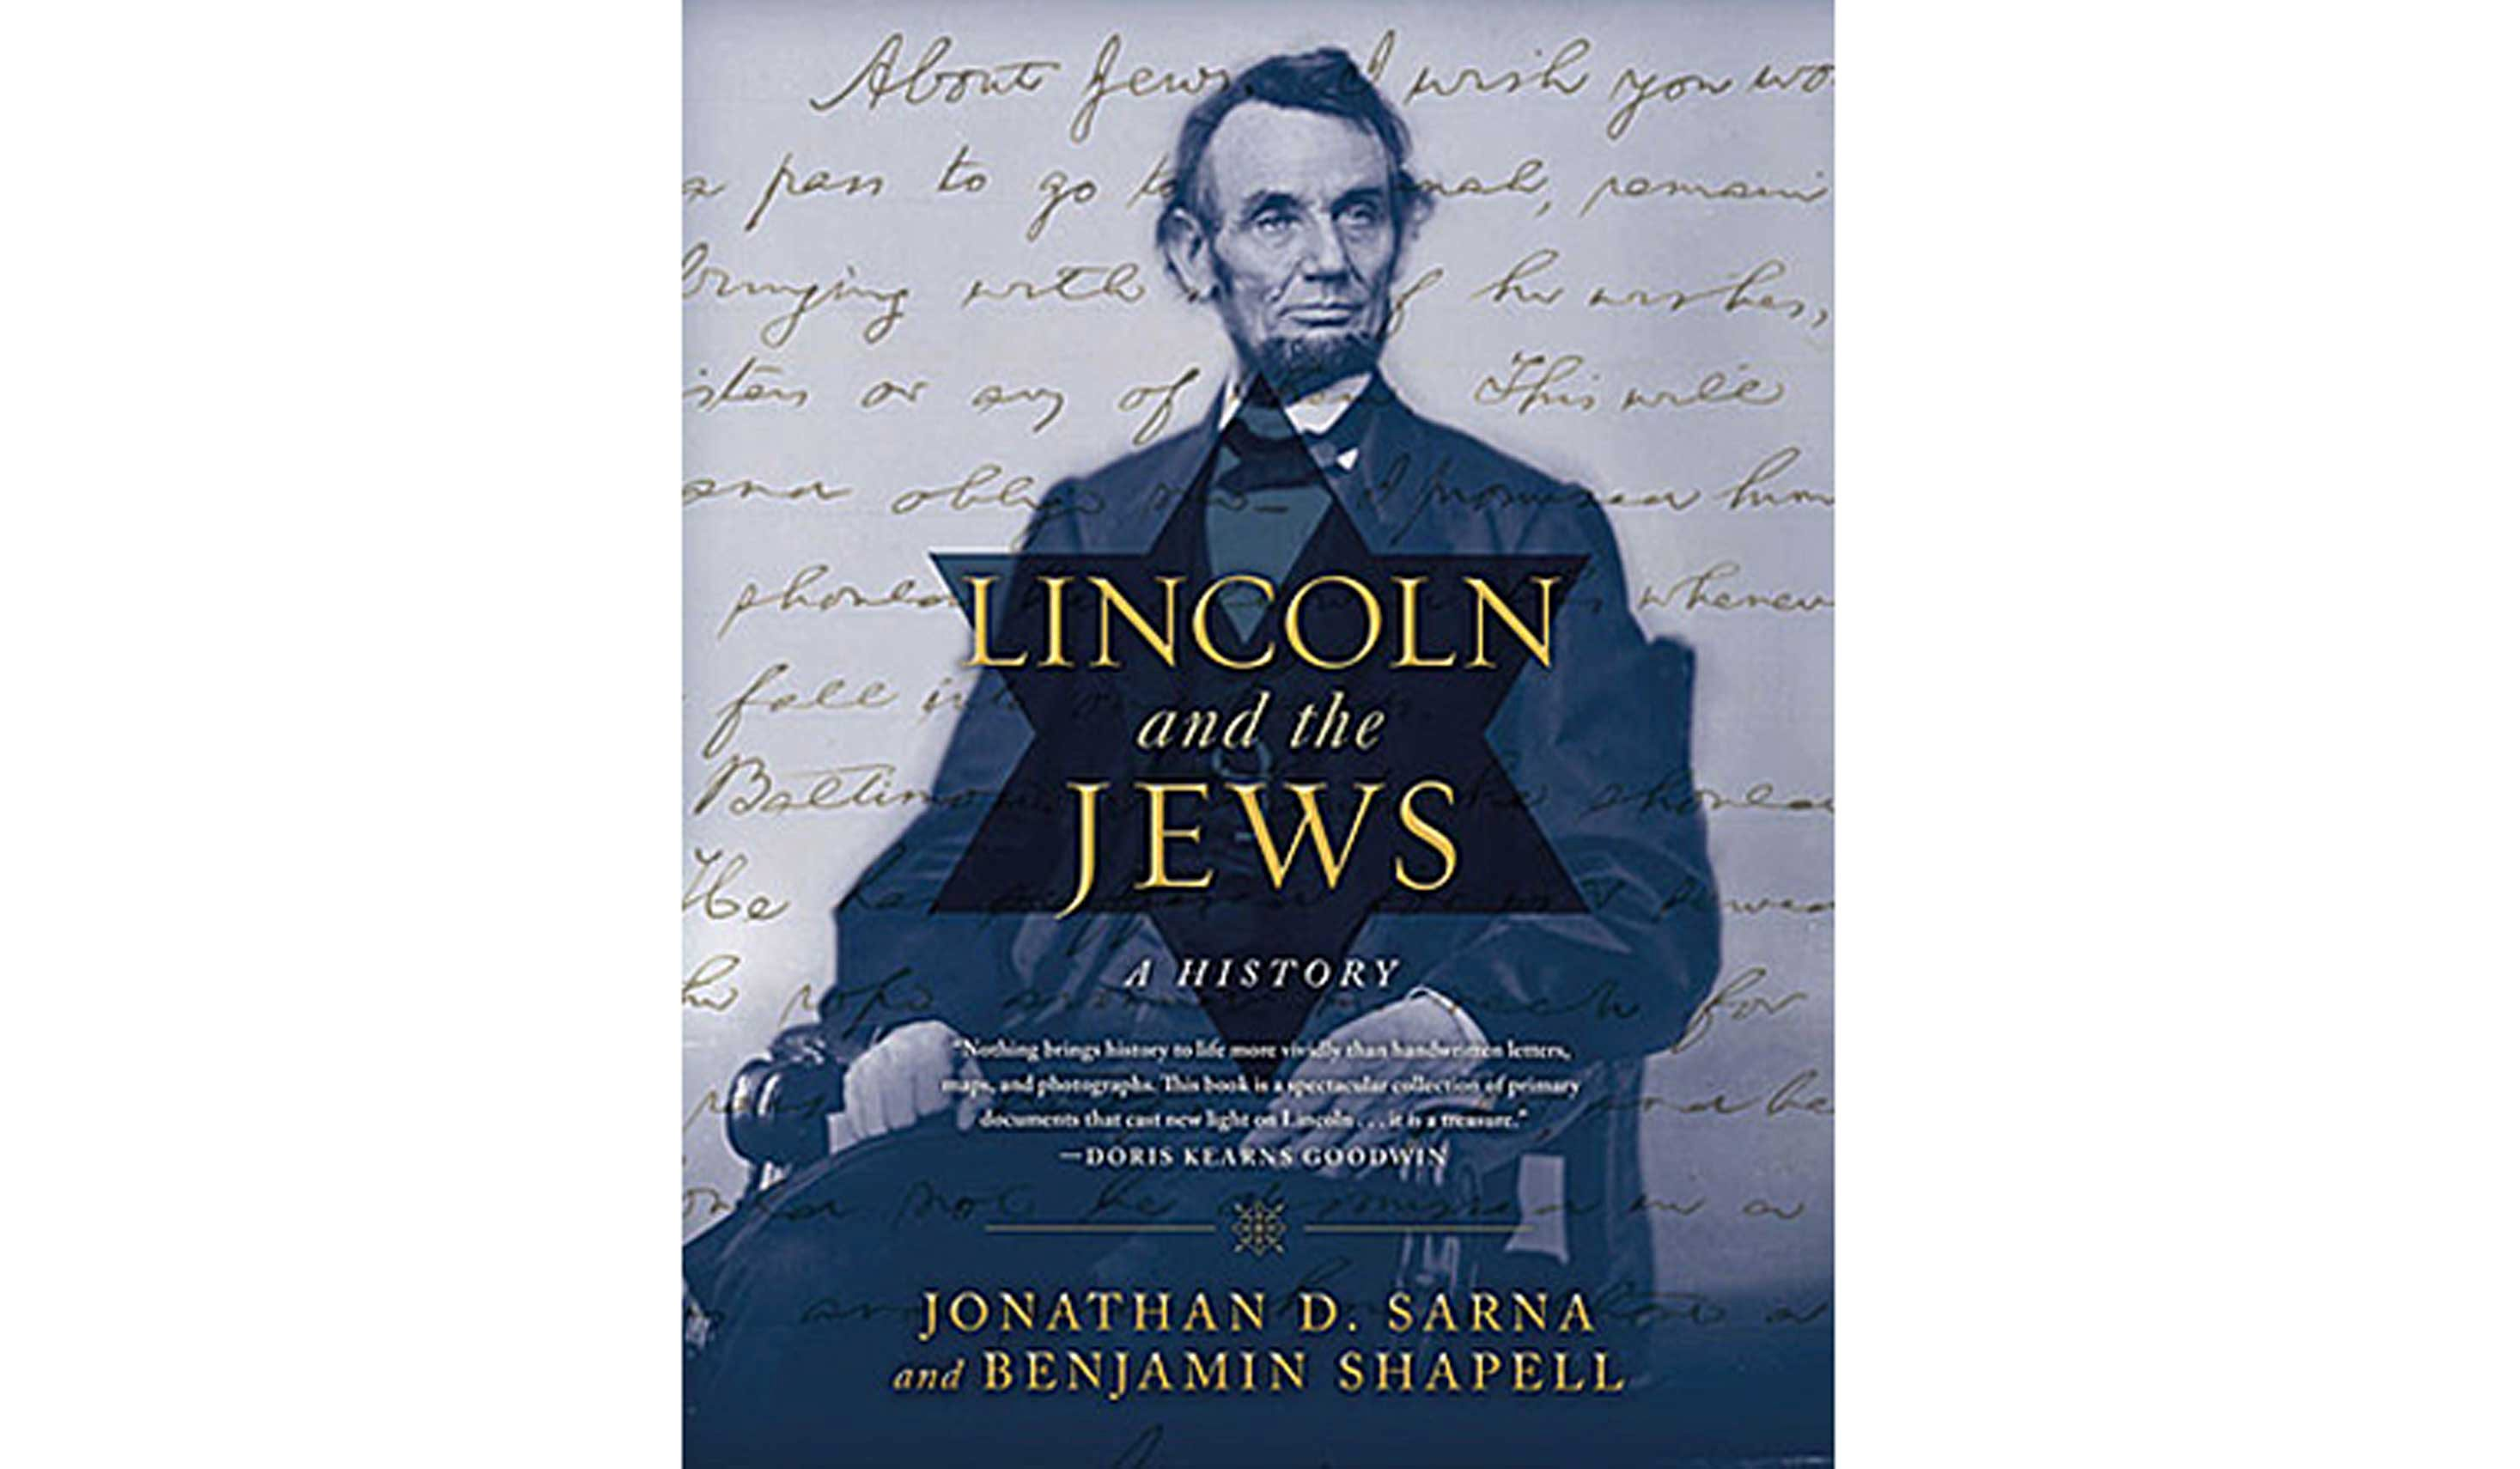 blaisdell wisdom a com bob dover vljl the wit dp abraham amazon editions thrift book quotations of lincoln books and